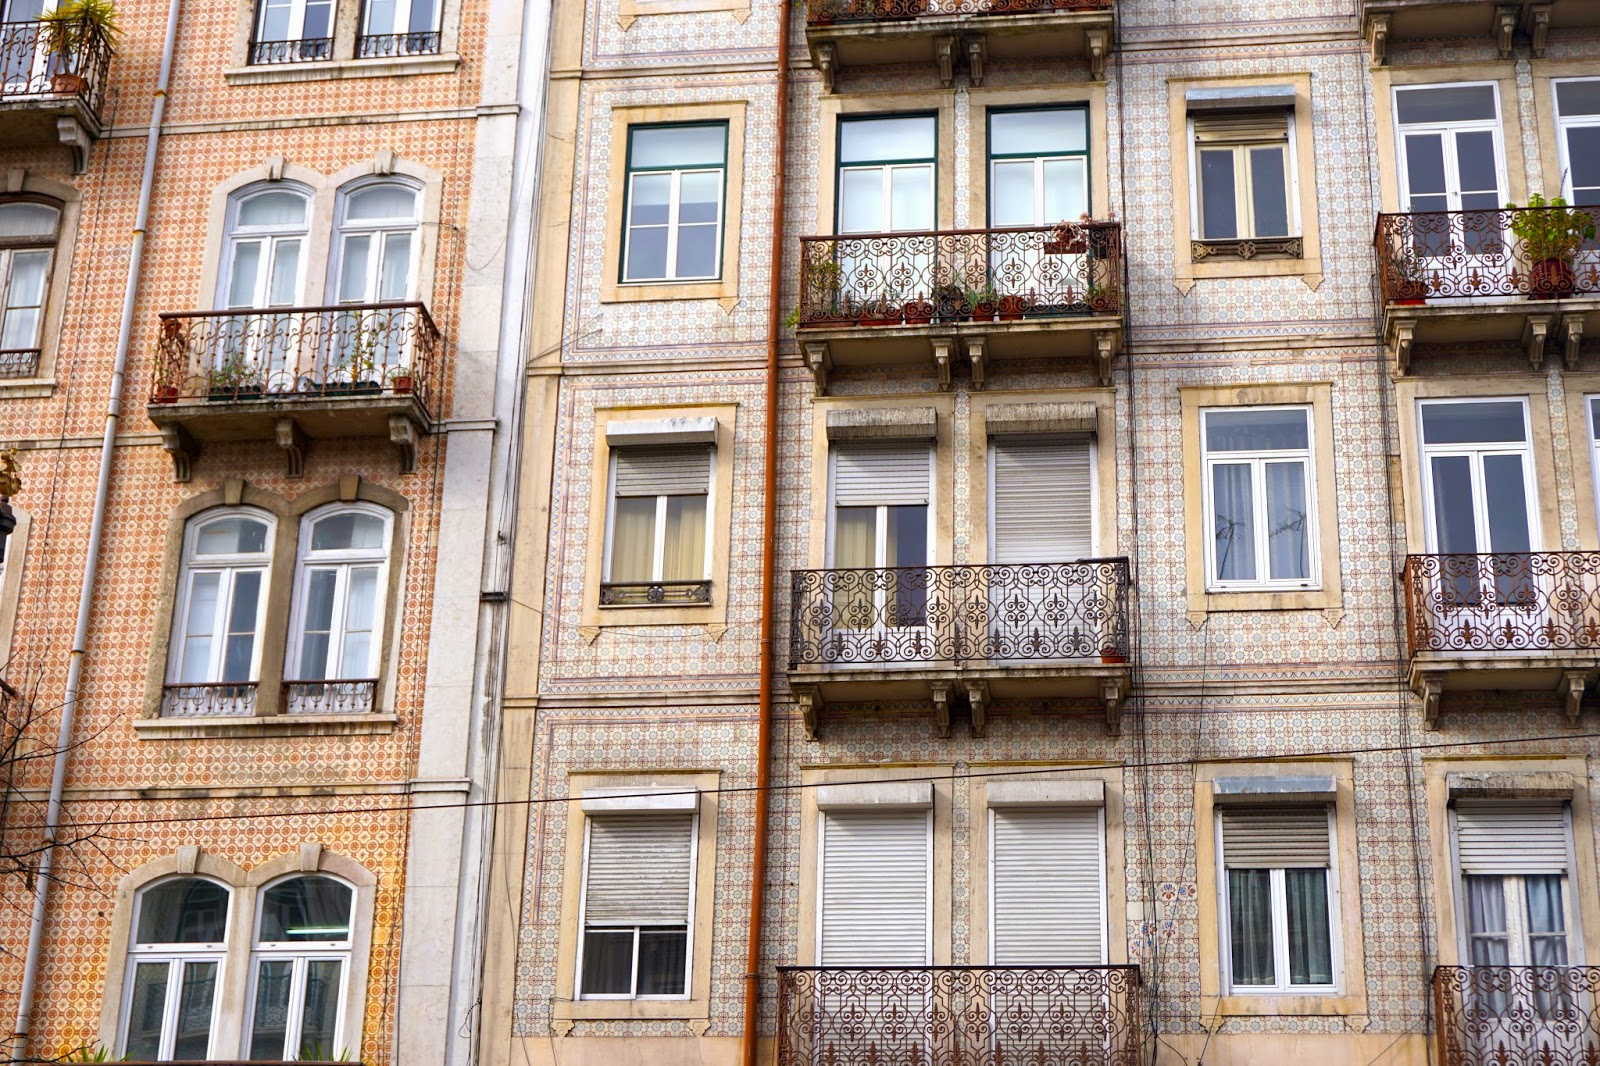 The colourful painted and tiled walls of Lisbon's buildings